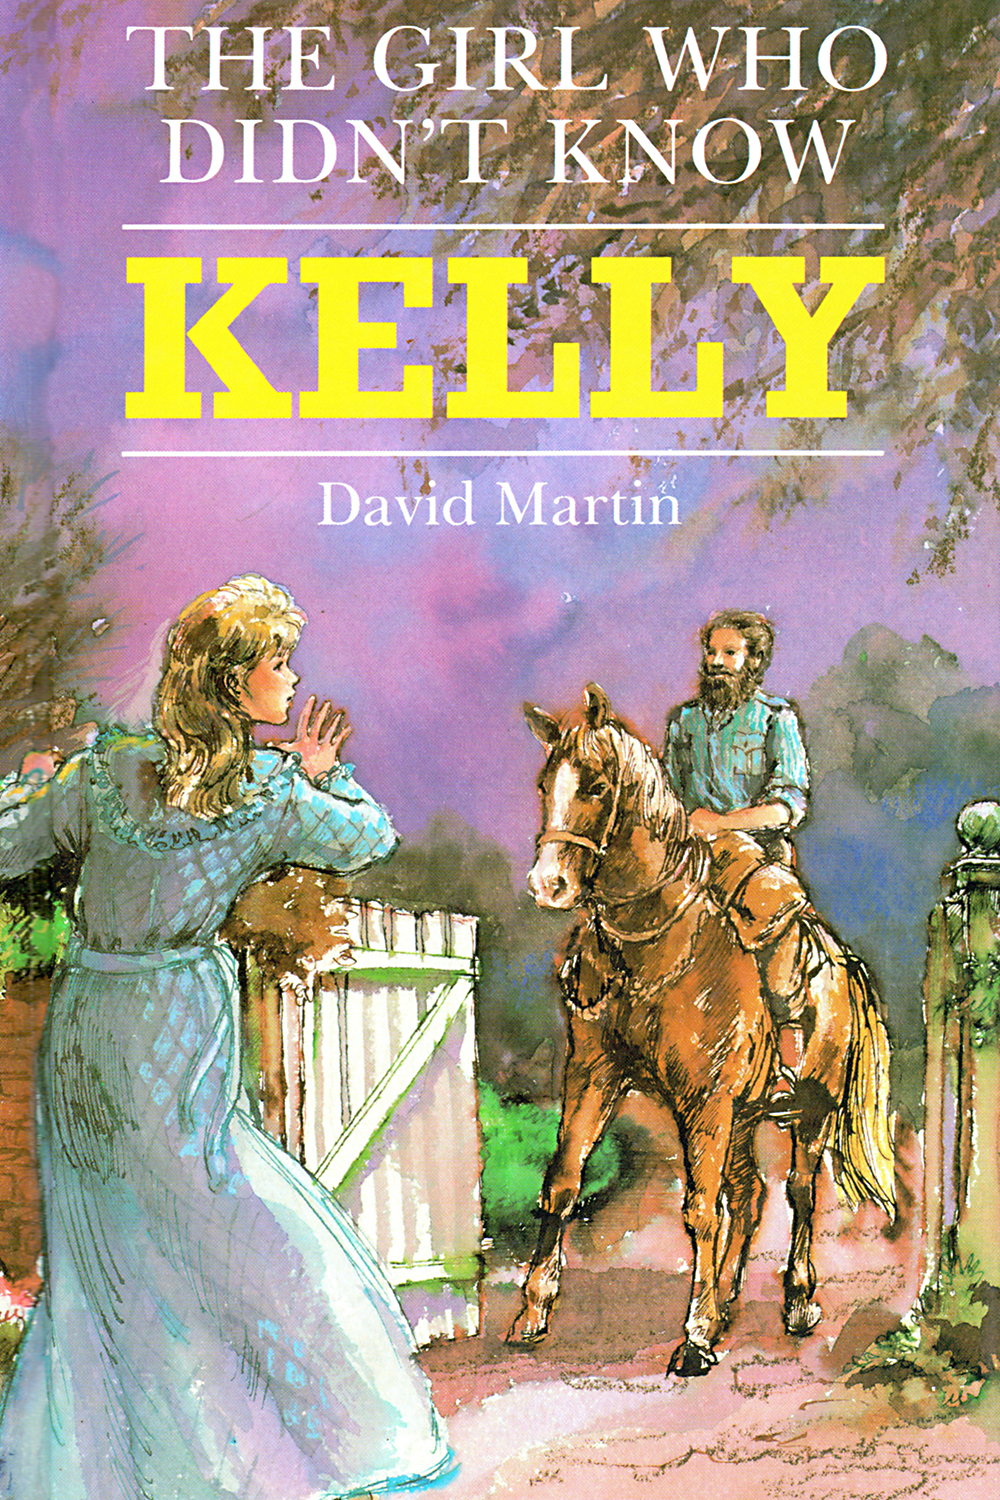 The Girl Who Didn't Know Ned Kelly by David Martin